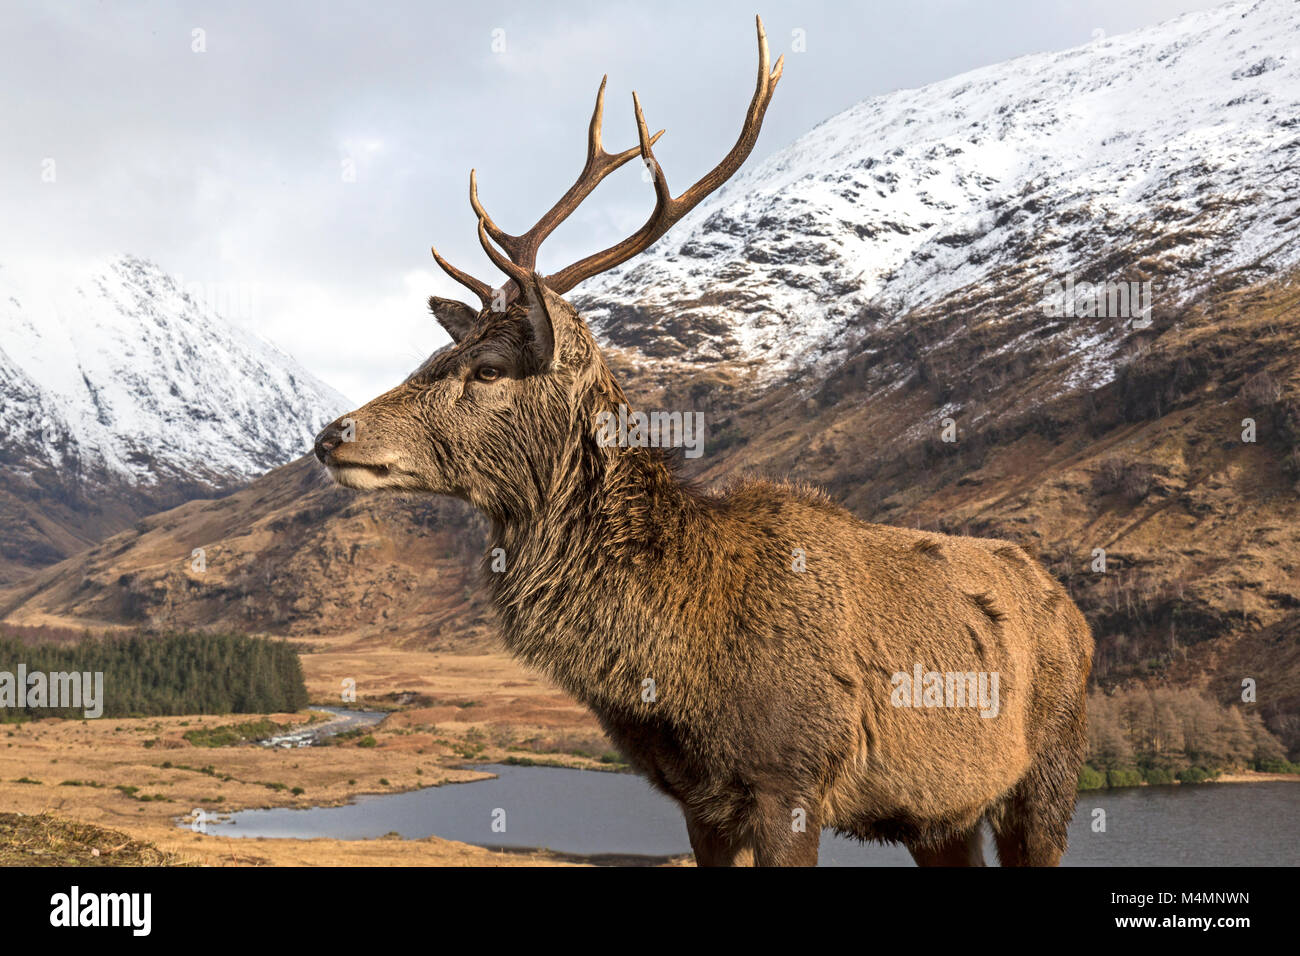 Wild Red Deer (Cervus Elaphus) Stag in Glen Etive, Scotland, during the winter, with snow capped mountains in the - Stock Image